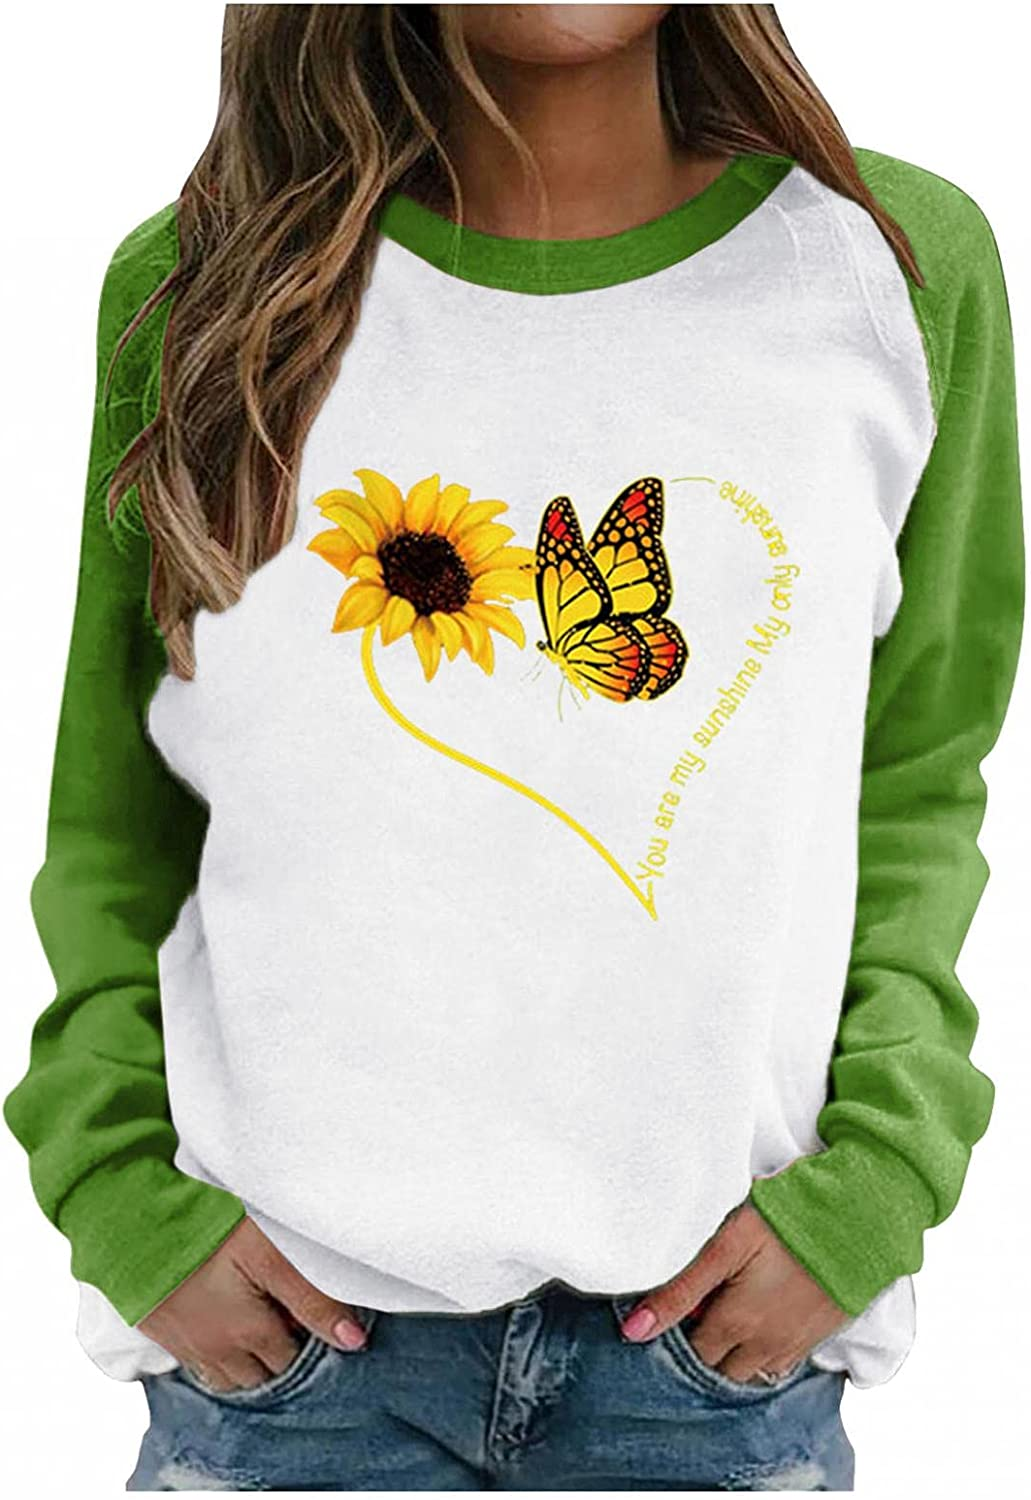 Toeava Crewneck Sweatshirts for Women,Womens Casual Long Sleeve Sunflower Graphic Tee Shirts Pullover Tops Outwear